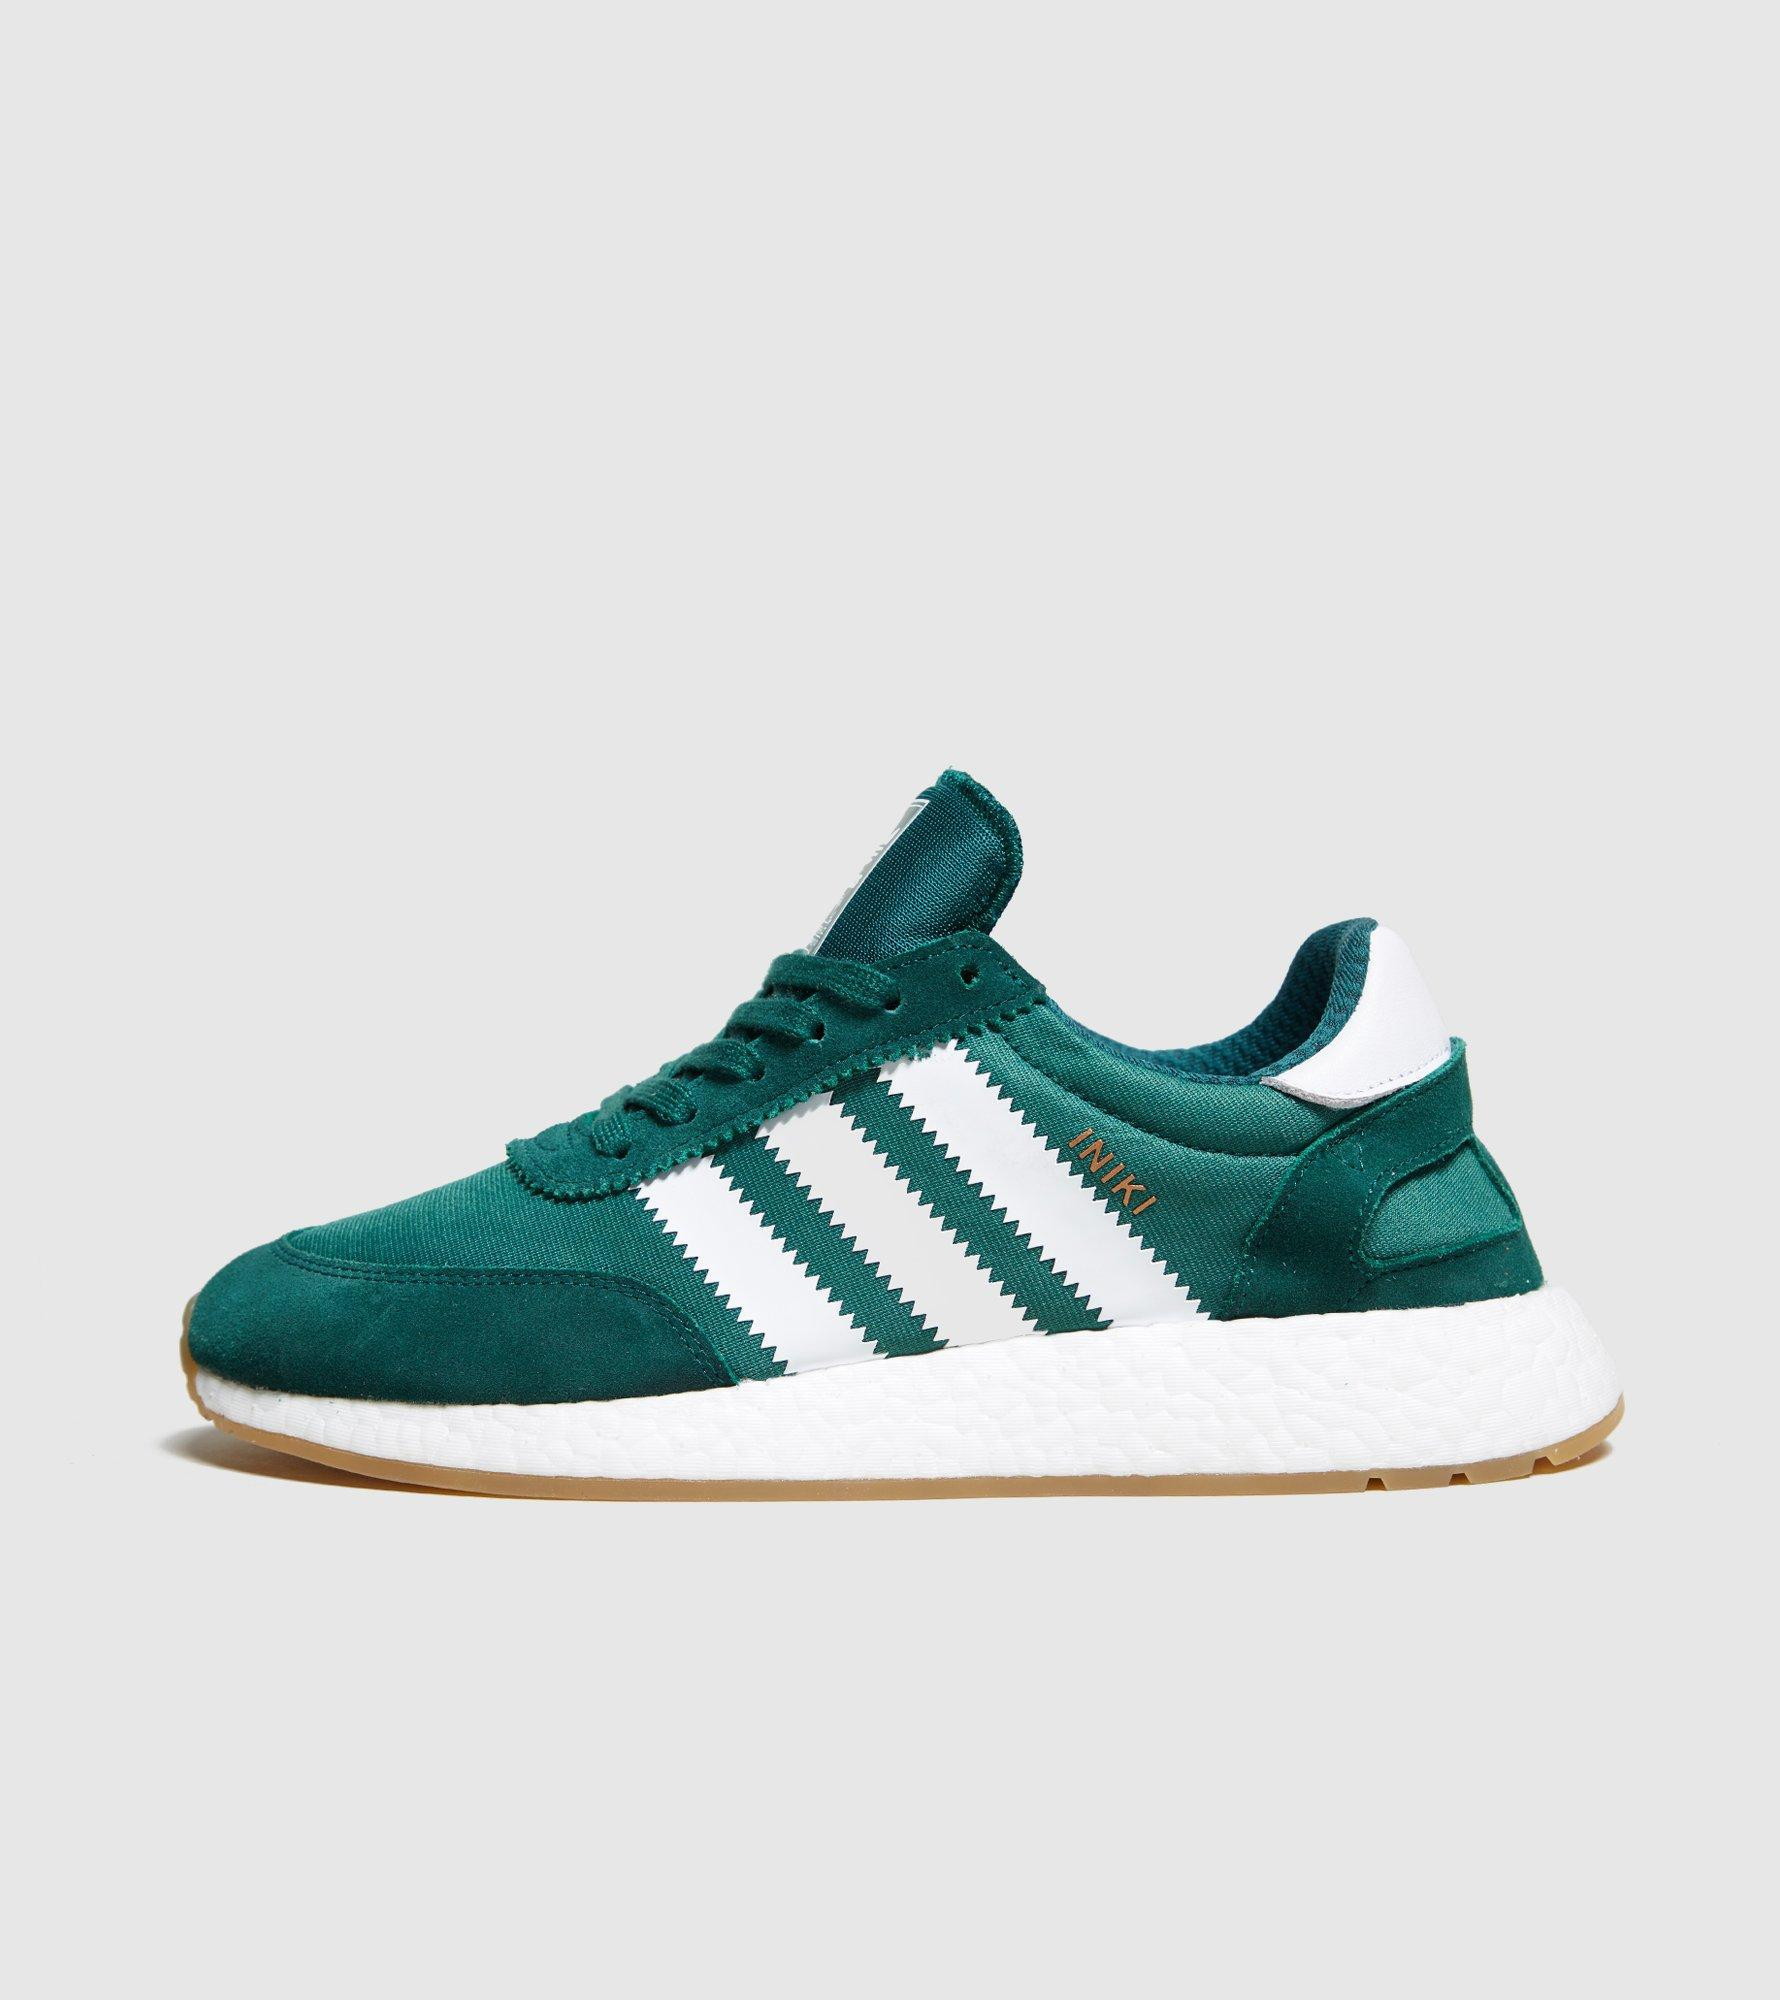 newest ea18b 3d3a9 adidas Originals Iniki in Green for Men - Lyst